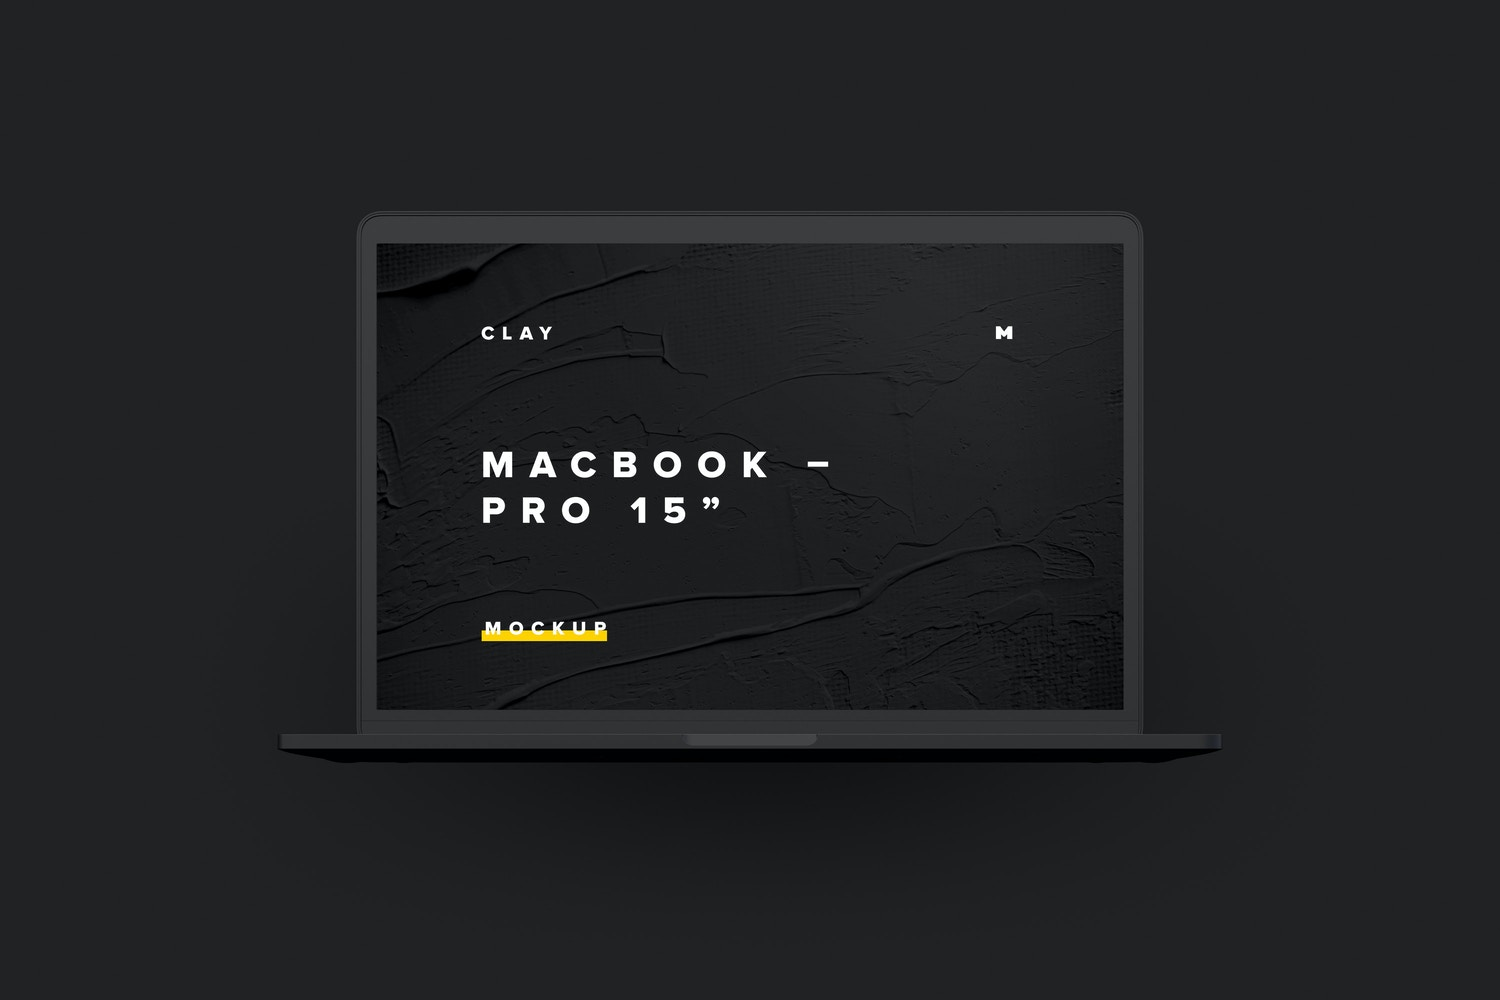 "Clay MacBook Pro 15"" with Touch Bar, Front View Mockup (6) by Original Mockups on Original Mockups"